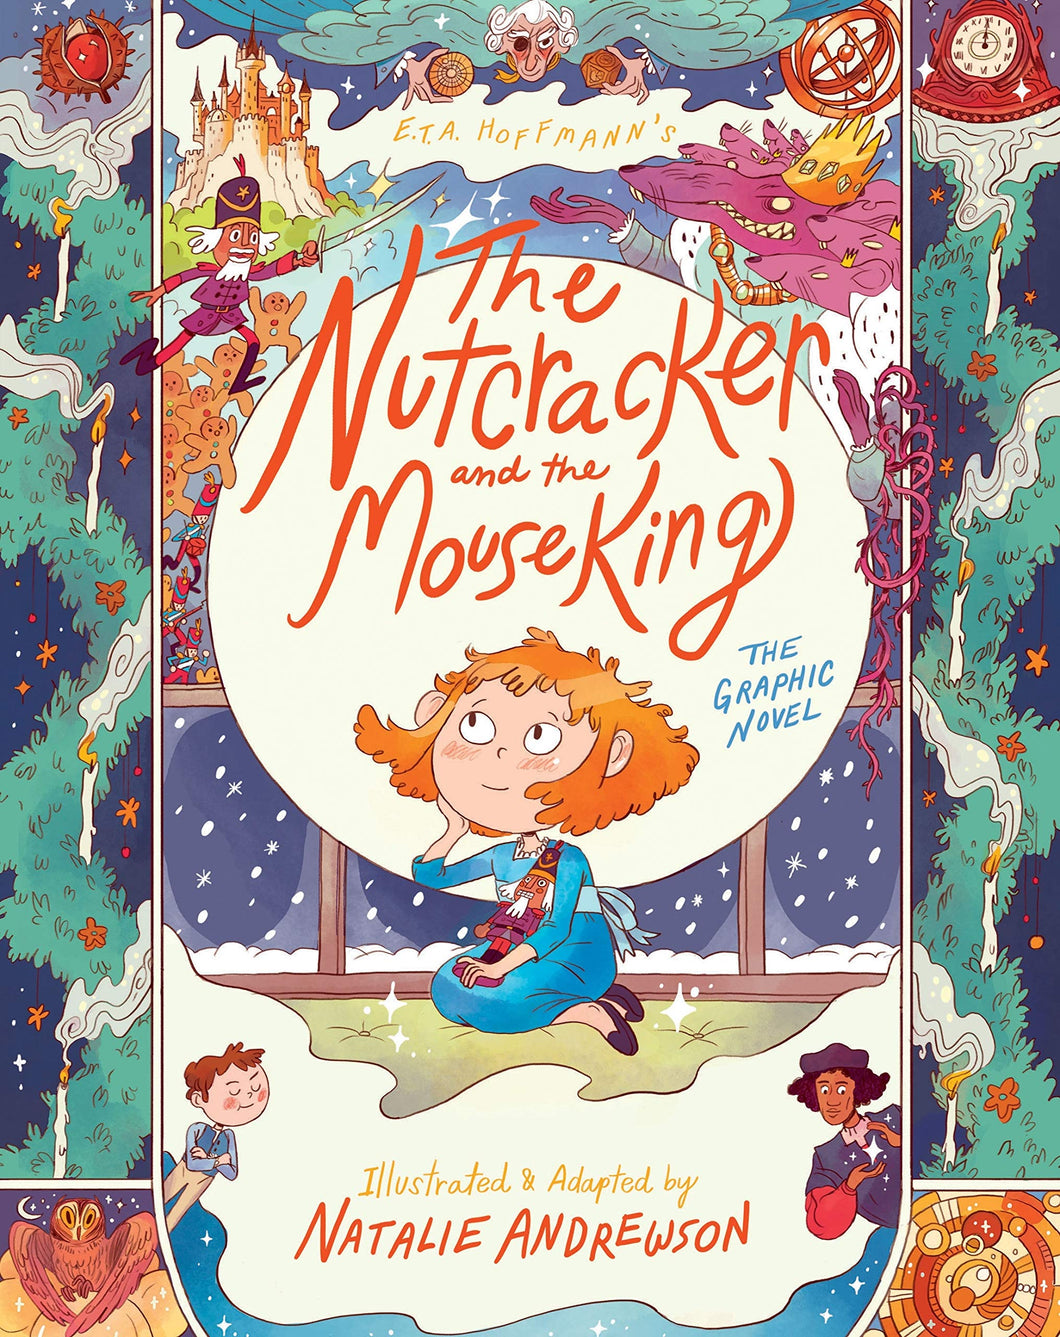 The Nutcracker and the Mouse King: The Graphic Novel by Natalie Andrewson (E.T.A. Hoffmann)